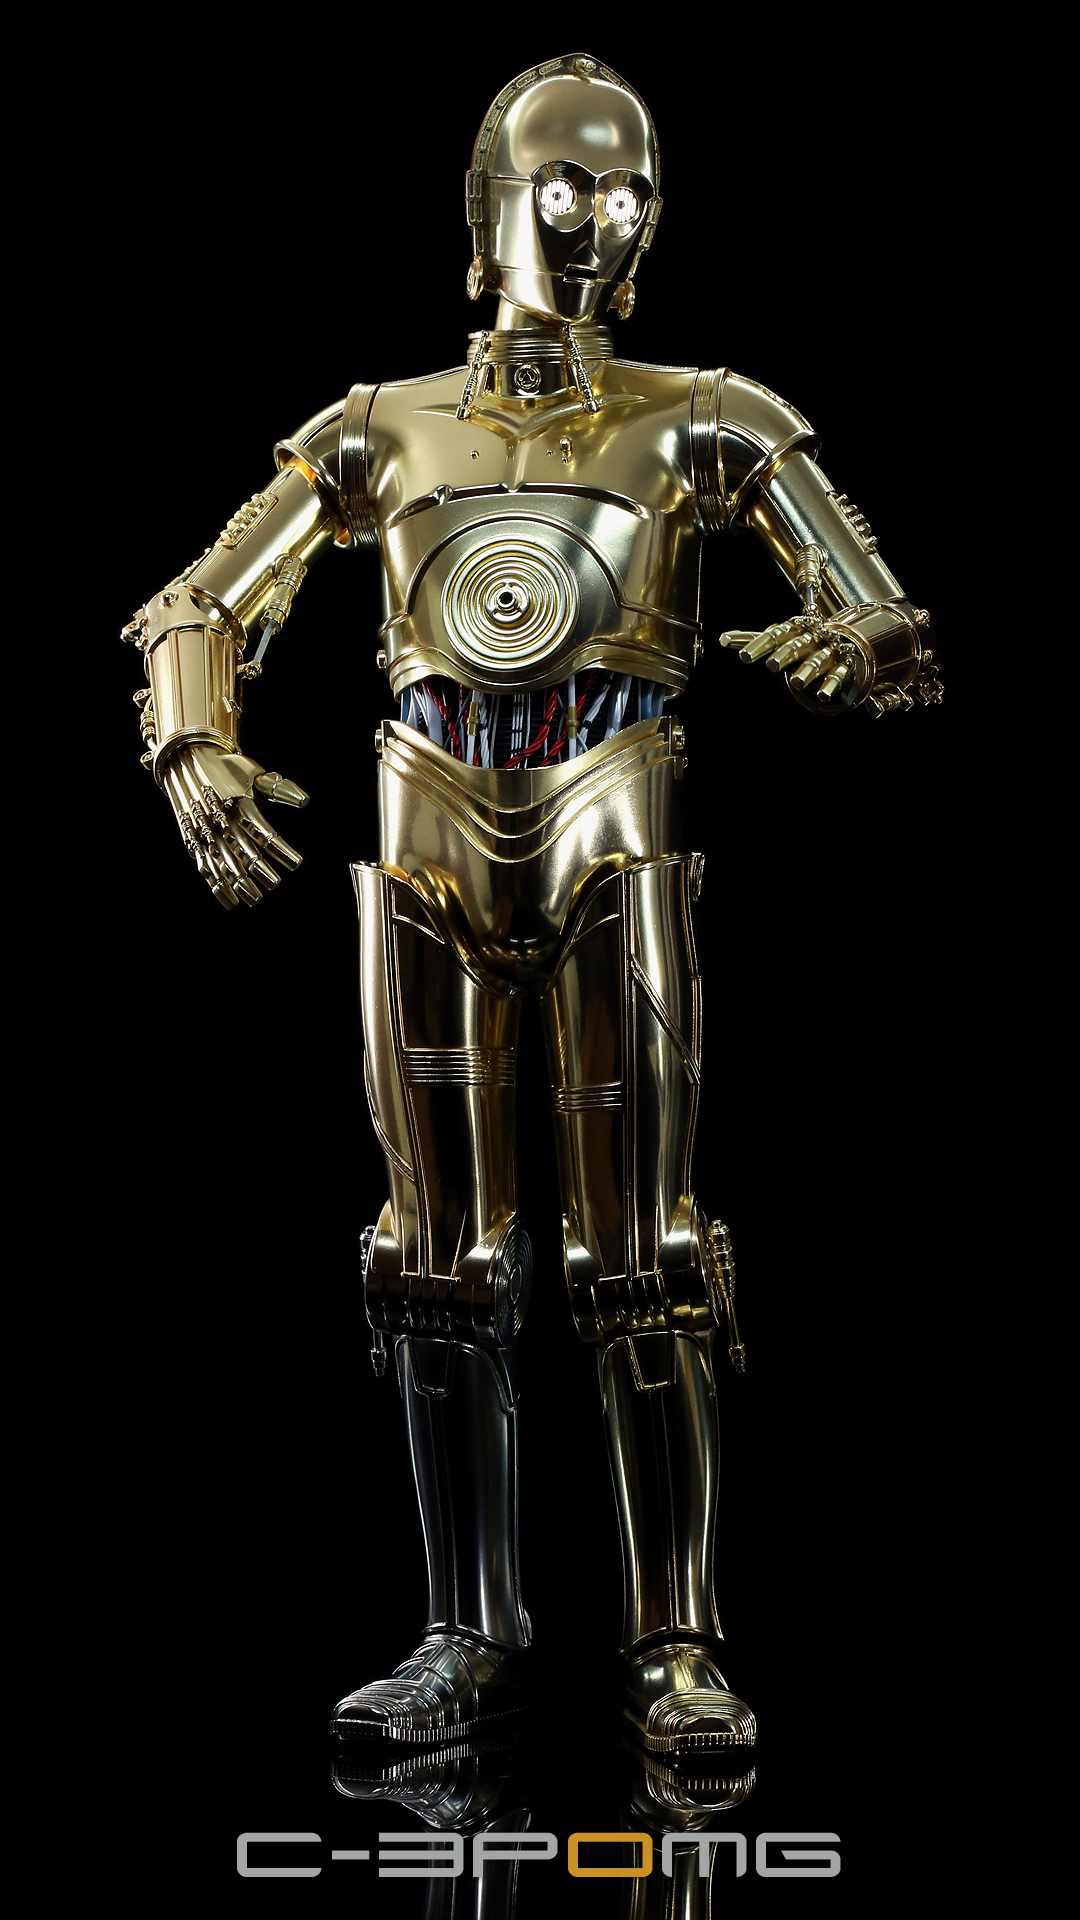 [Bandai] Star Wars: C-3PO - Perfect Model 1/6 scale - LANÇADO!!! - Página 2 C-3PO1027_zps2e3af23b